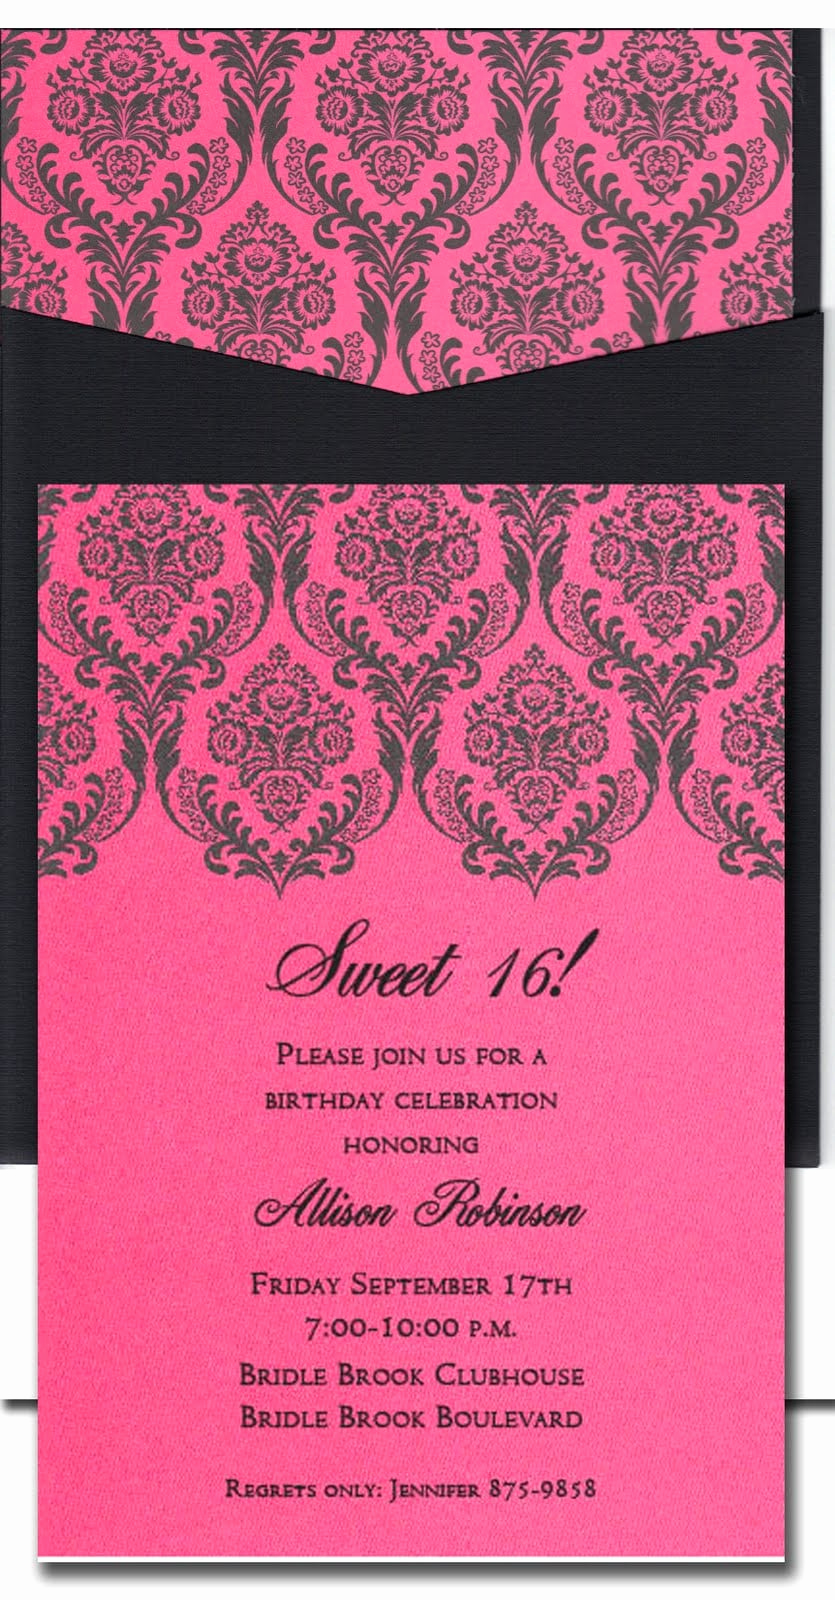 Sweet 16 Invitation Templates Luxury Sweet Sixteen Invitation Wording